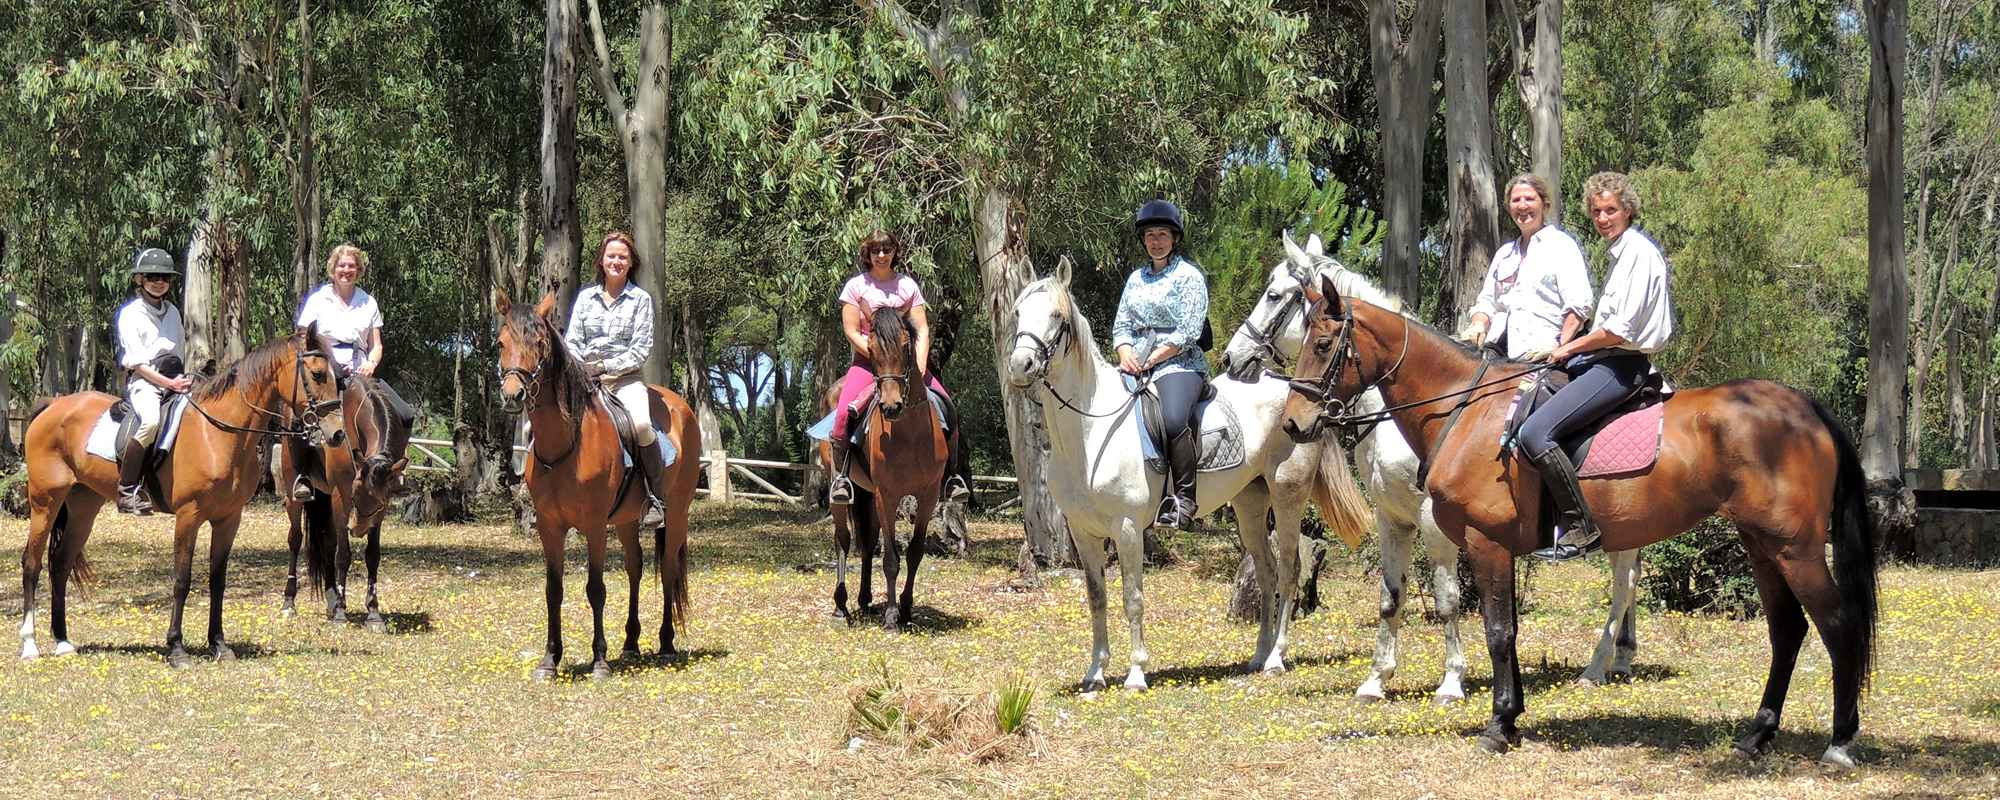 Horses being ridden in a pine forest.